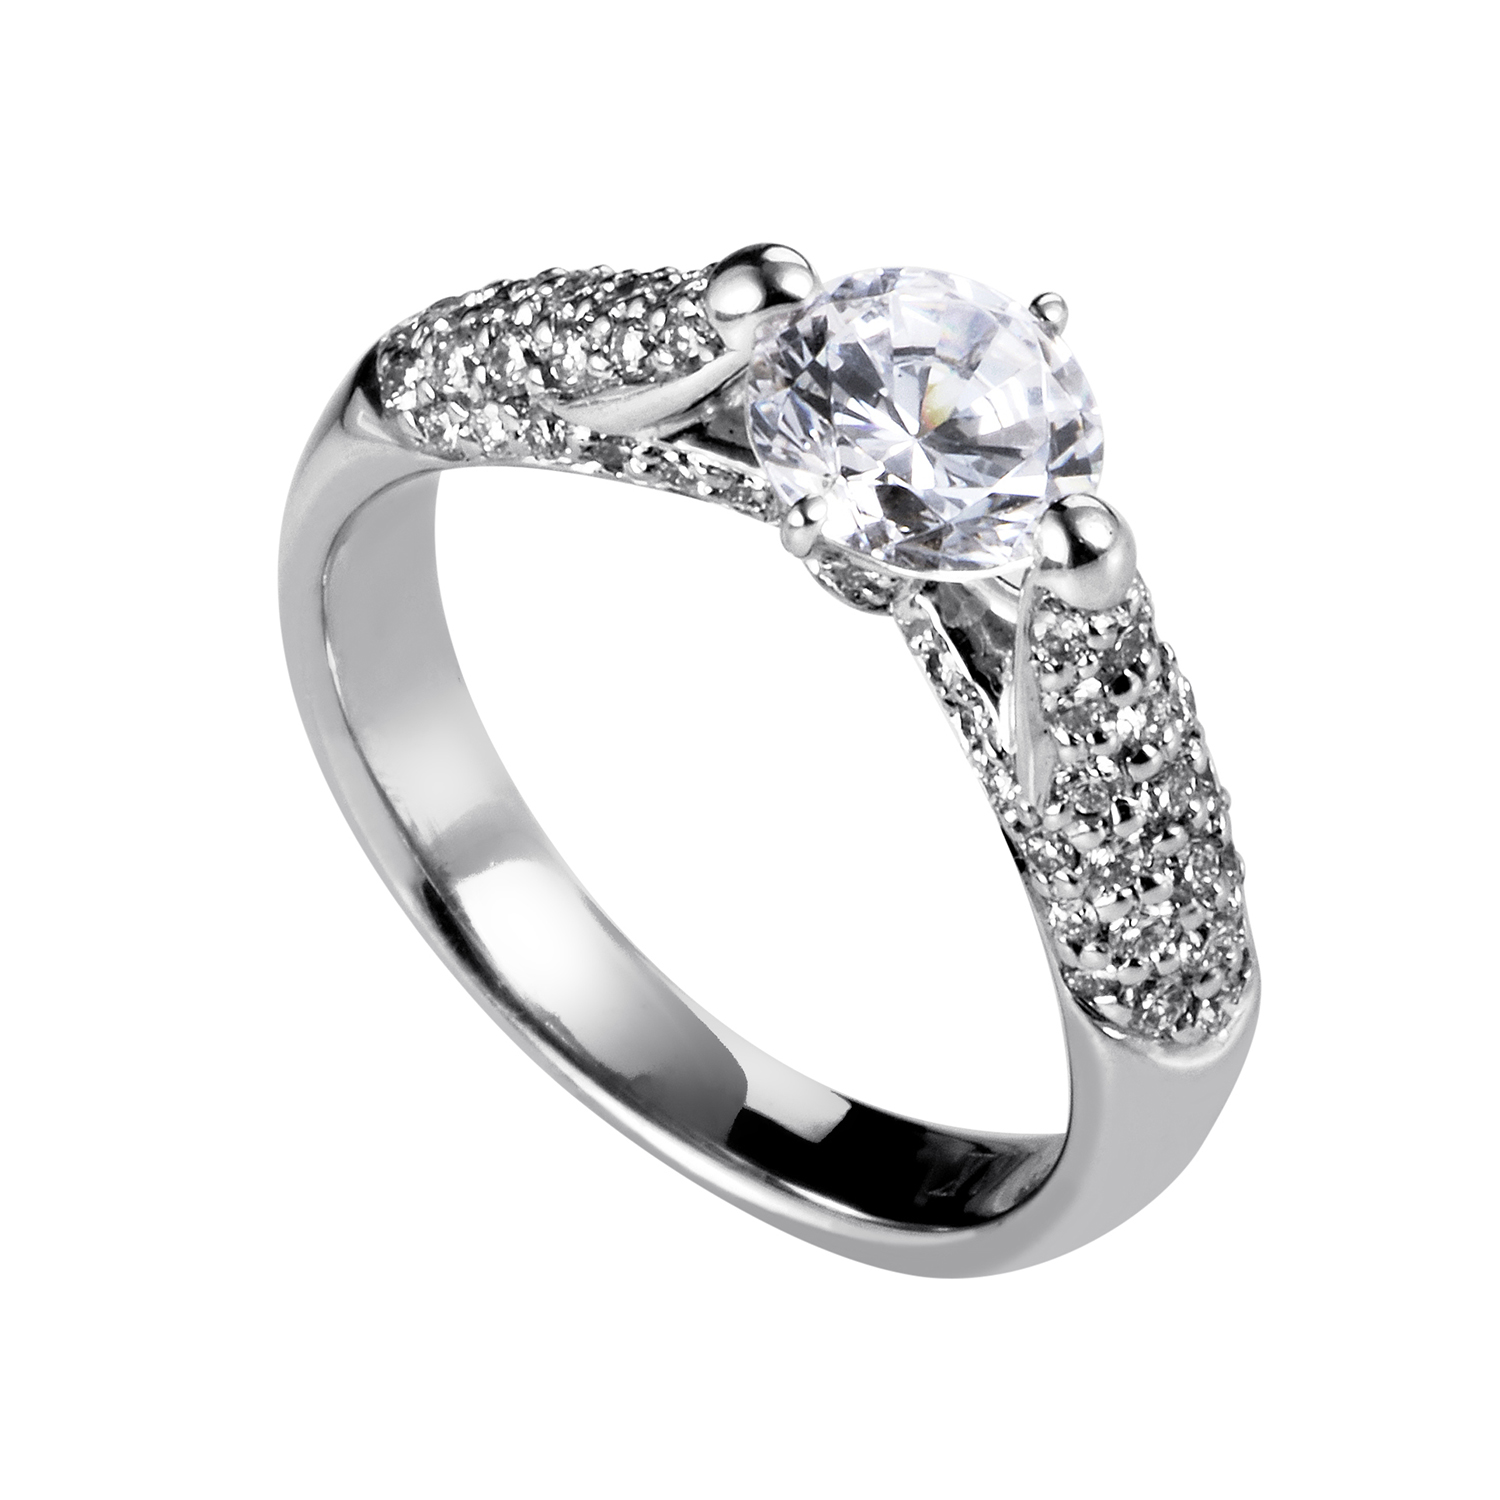 Women's 18K White Gold Diamond Engagement Ring SM8-051931